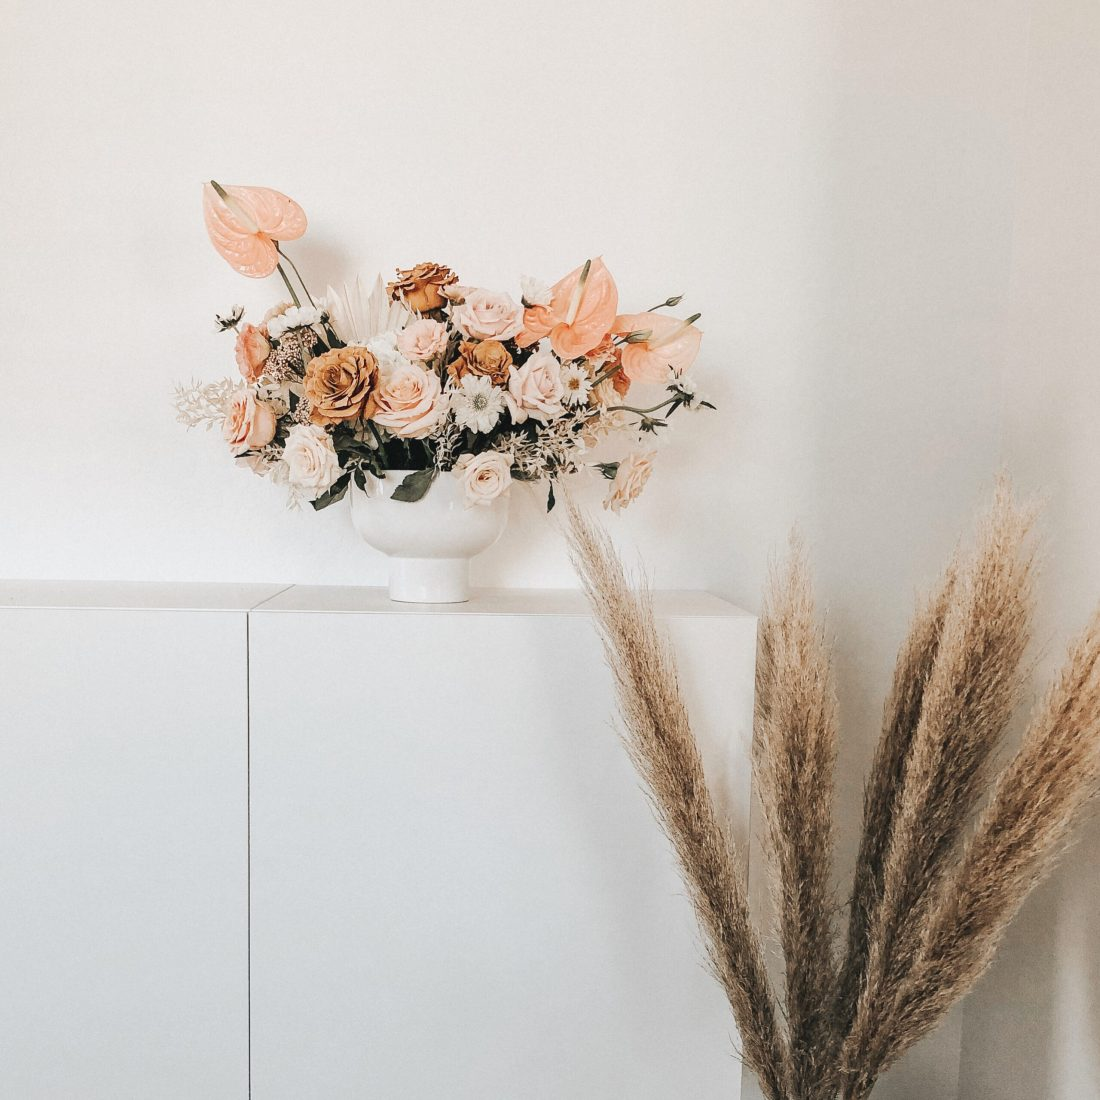 Where to find flowers for dried flower arrangements and the best flowers to choose || Darling Darleen Top Lifestyle Connecticut Blogger